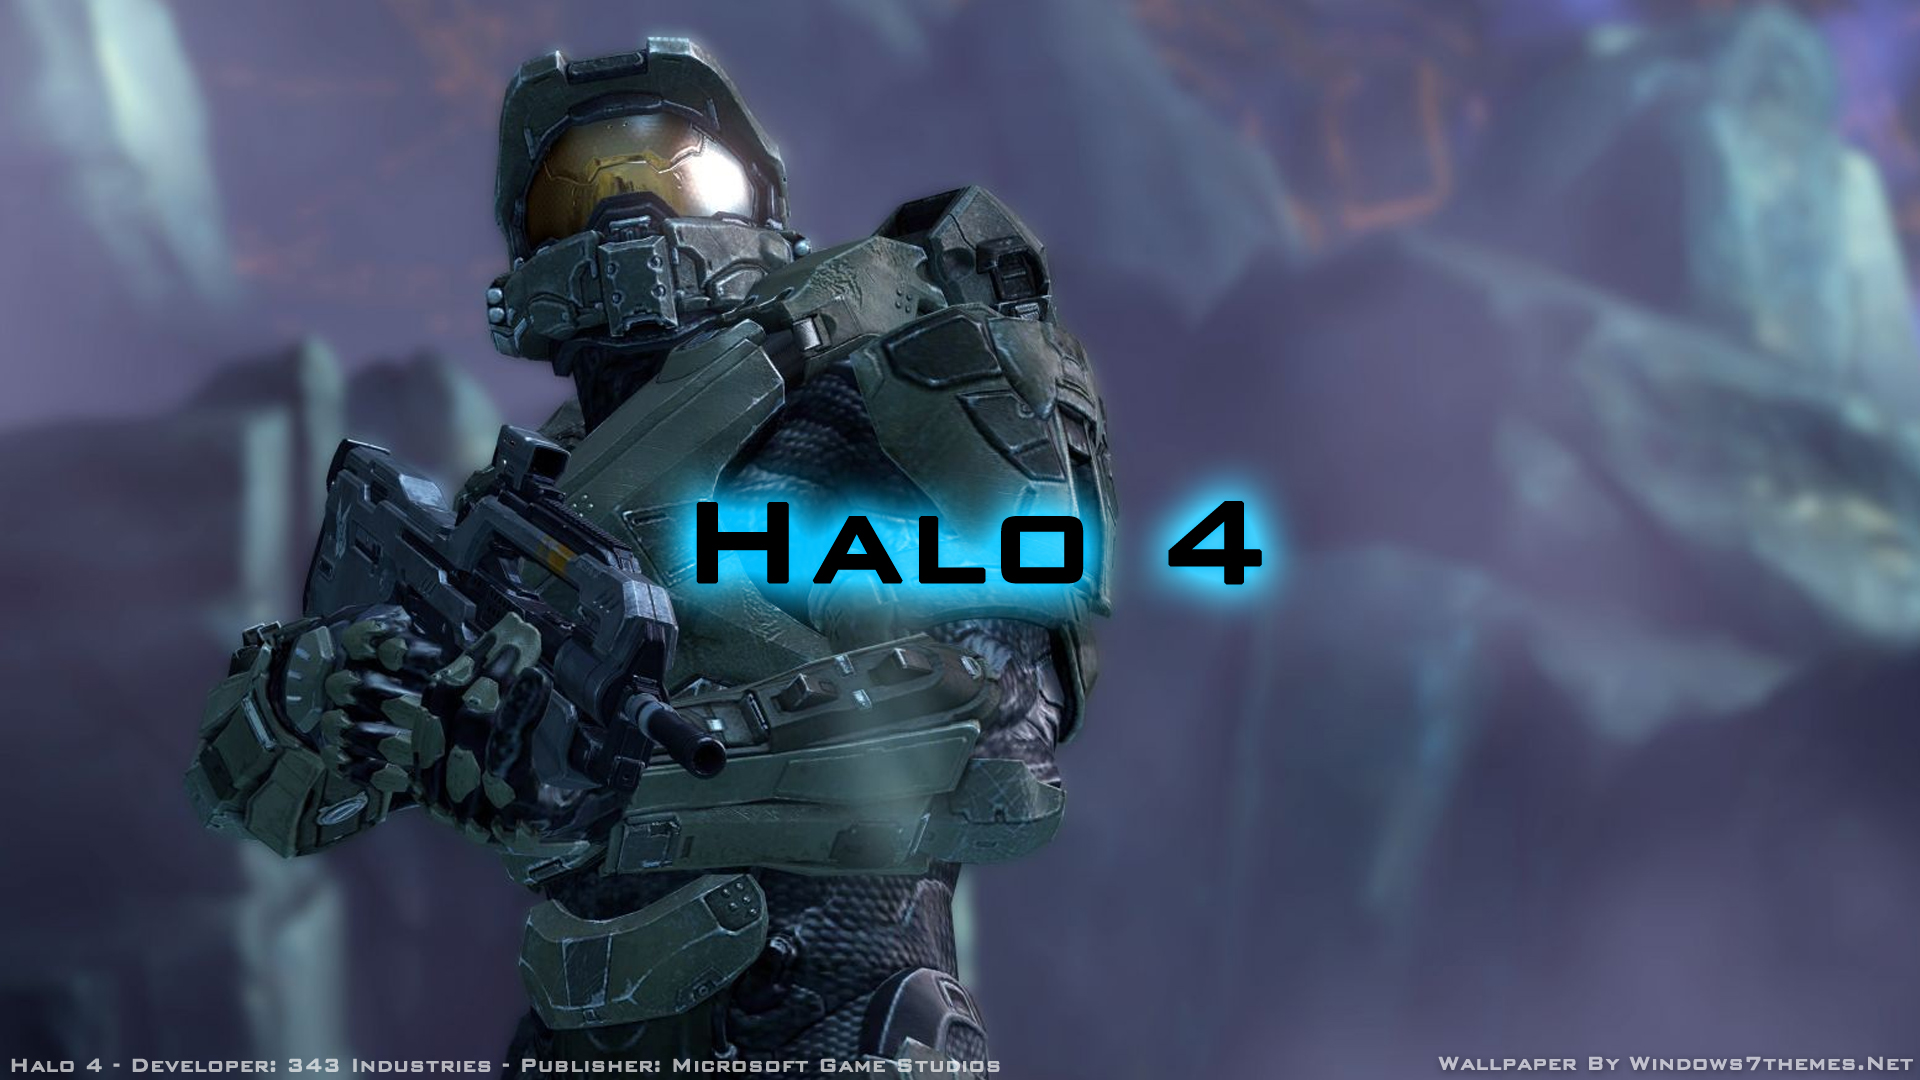 wallpapers cool halo wallpaper background large 1920x1080 1920x1080